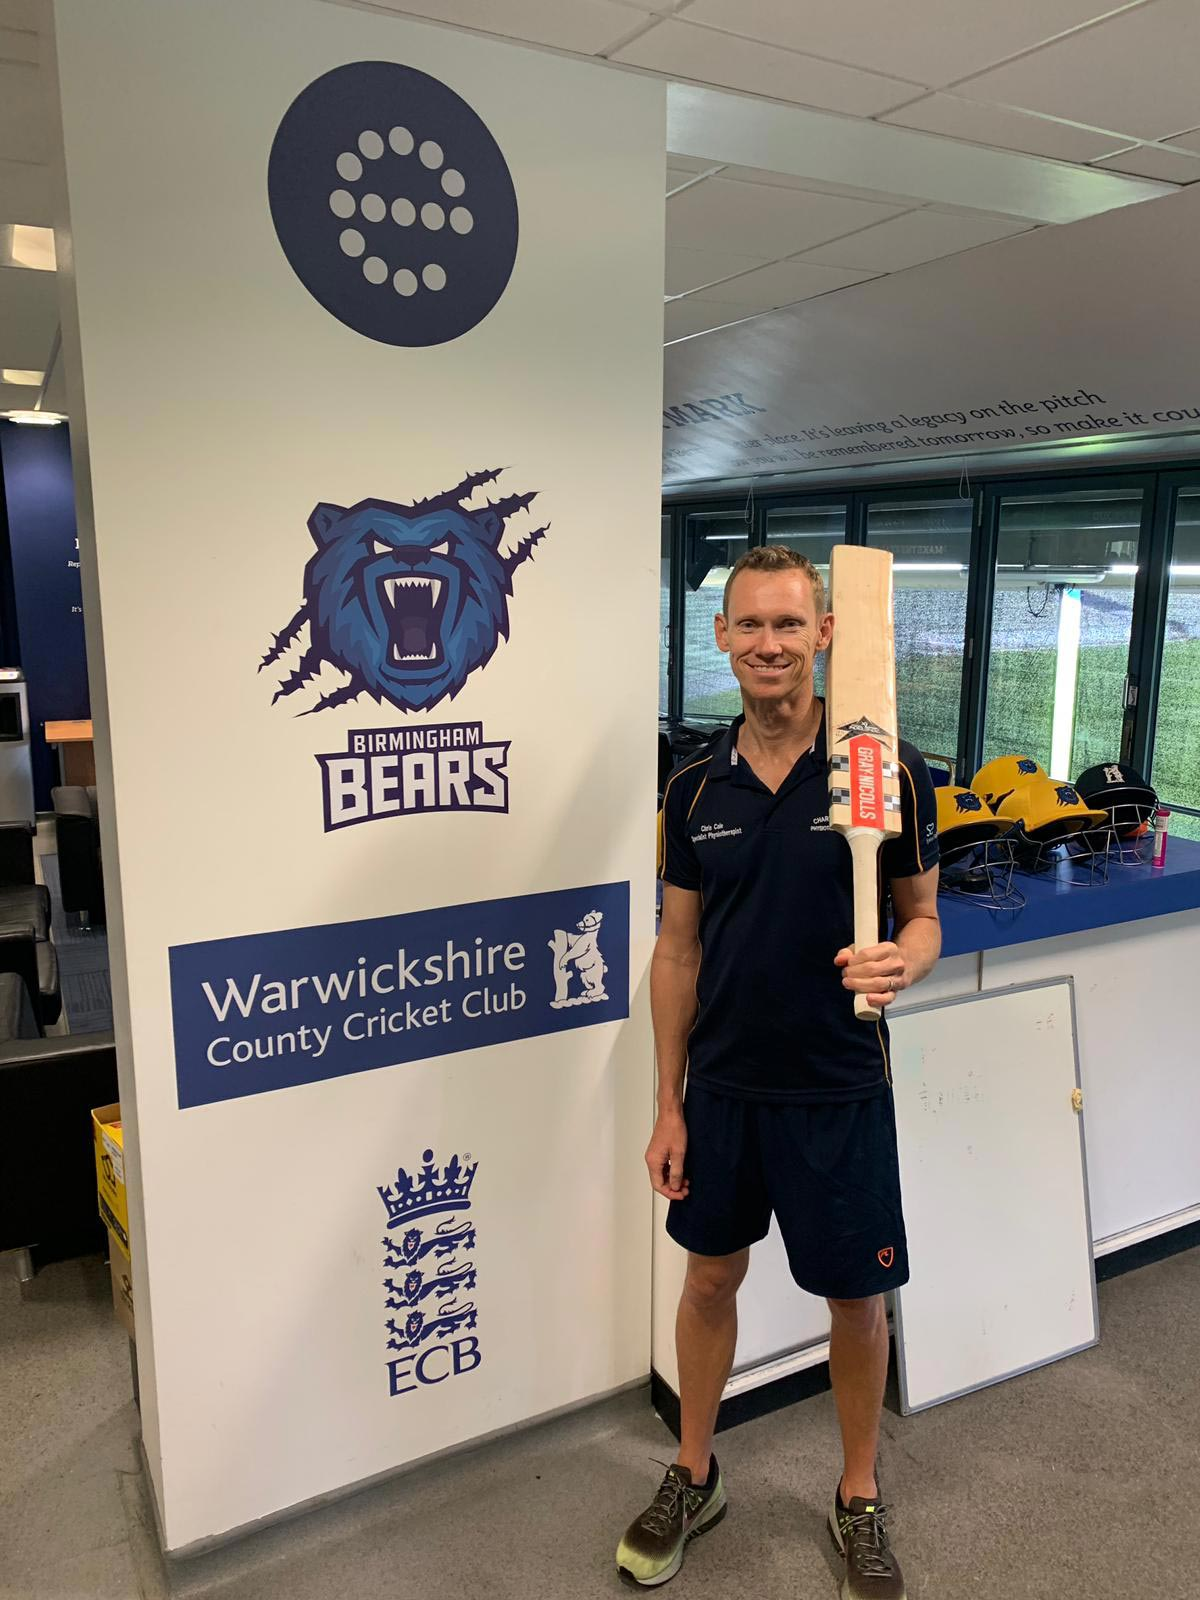 Howzat! Aussie physiotherapist on tour for Warwickshire County Cricket Club